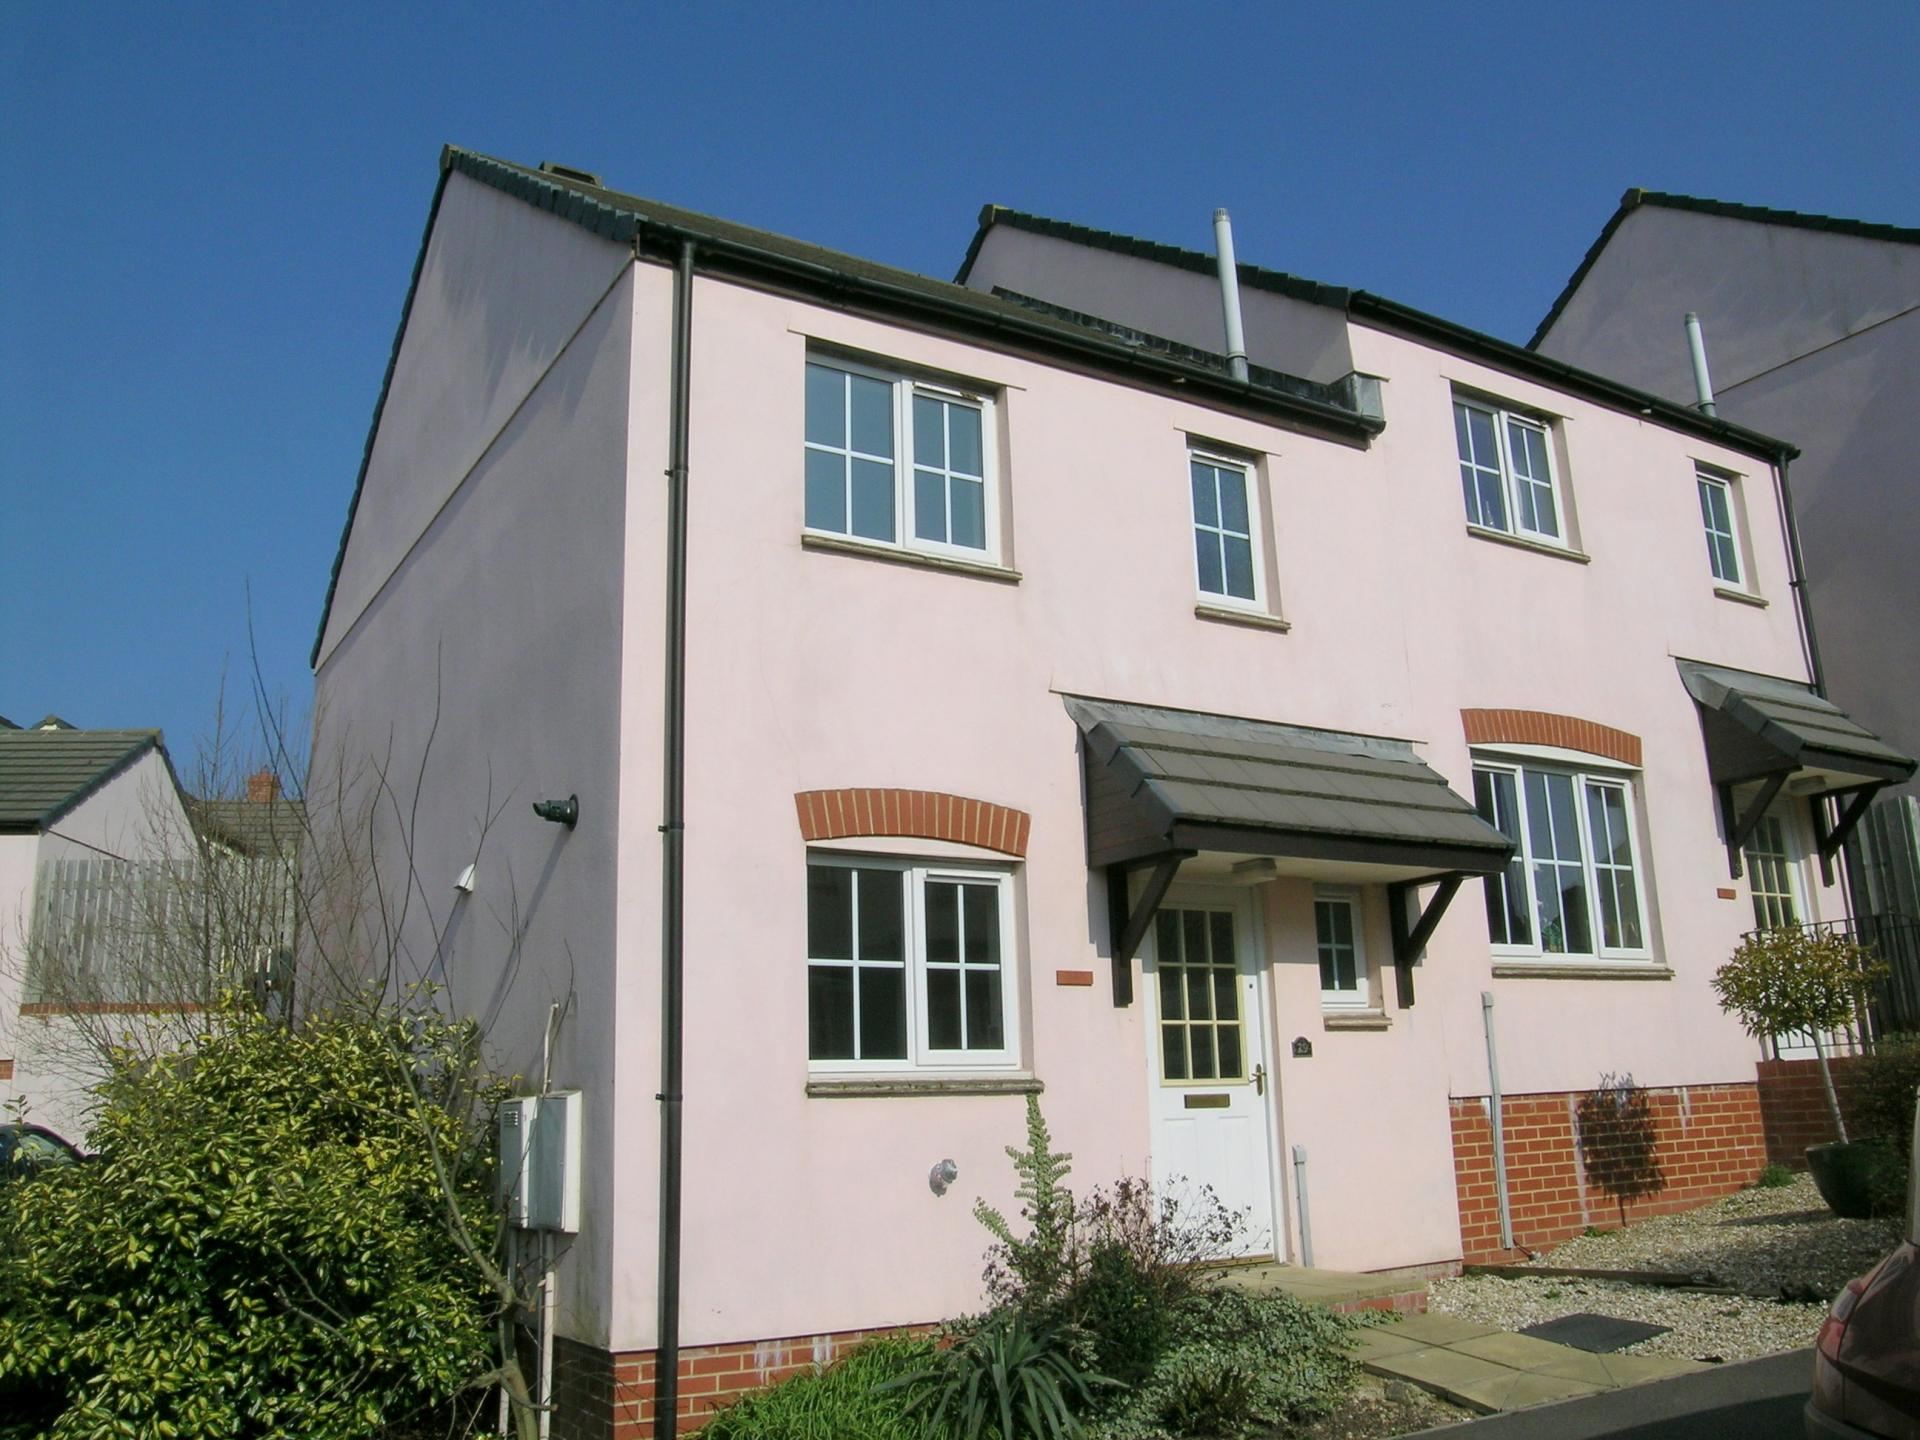 Apminster Property Services